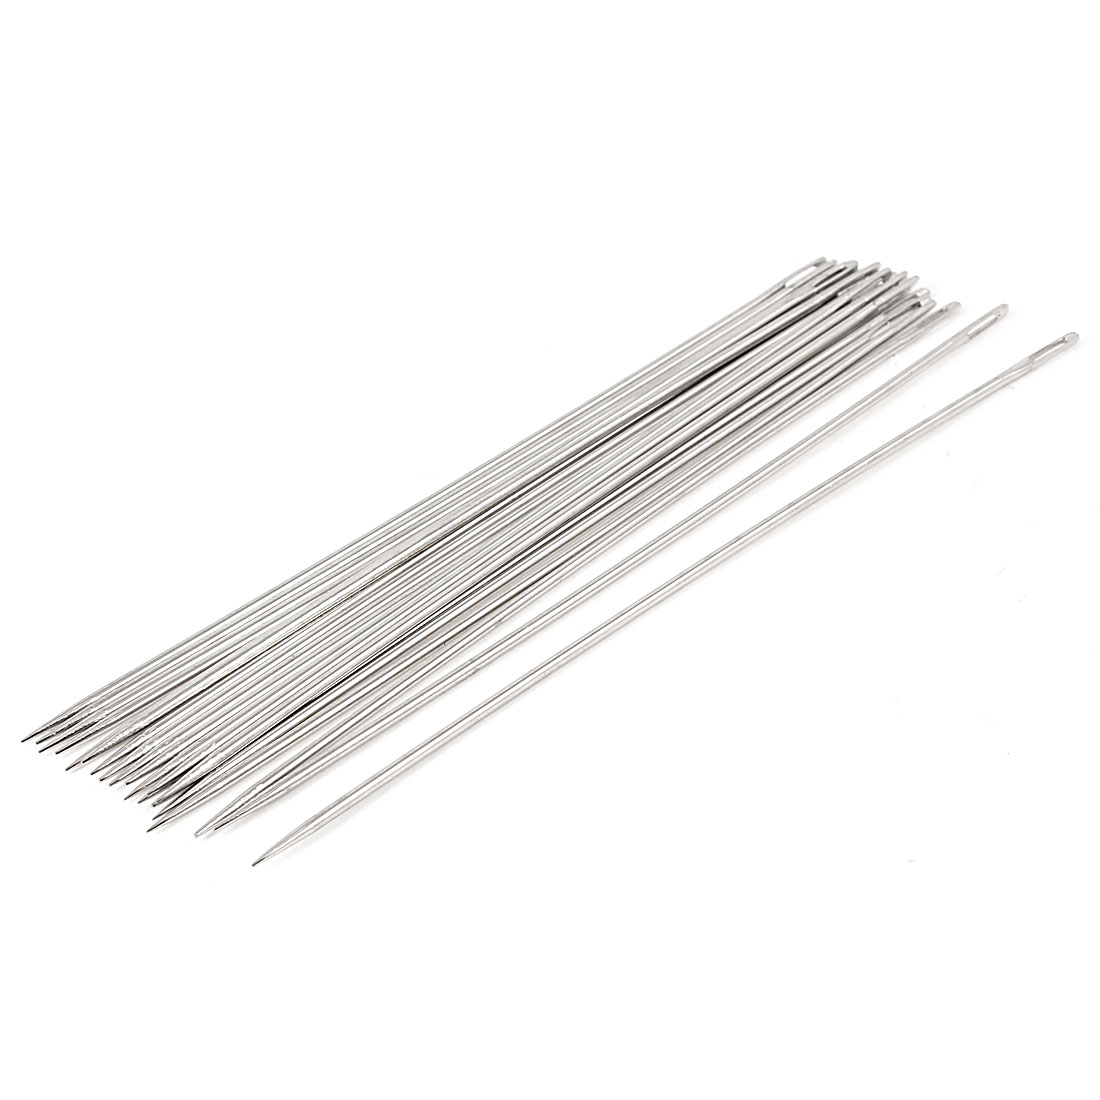 "6"" Length Silver Tone Metal Sharp Tip Threading Sewing Needles 20 Pcs"